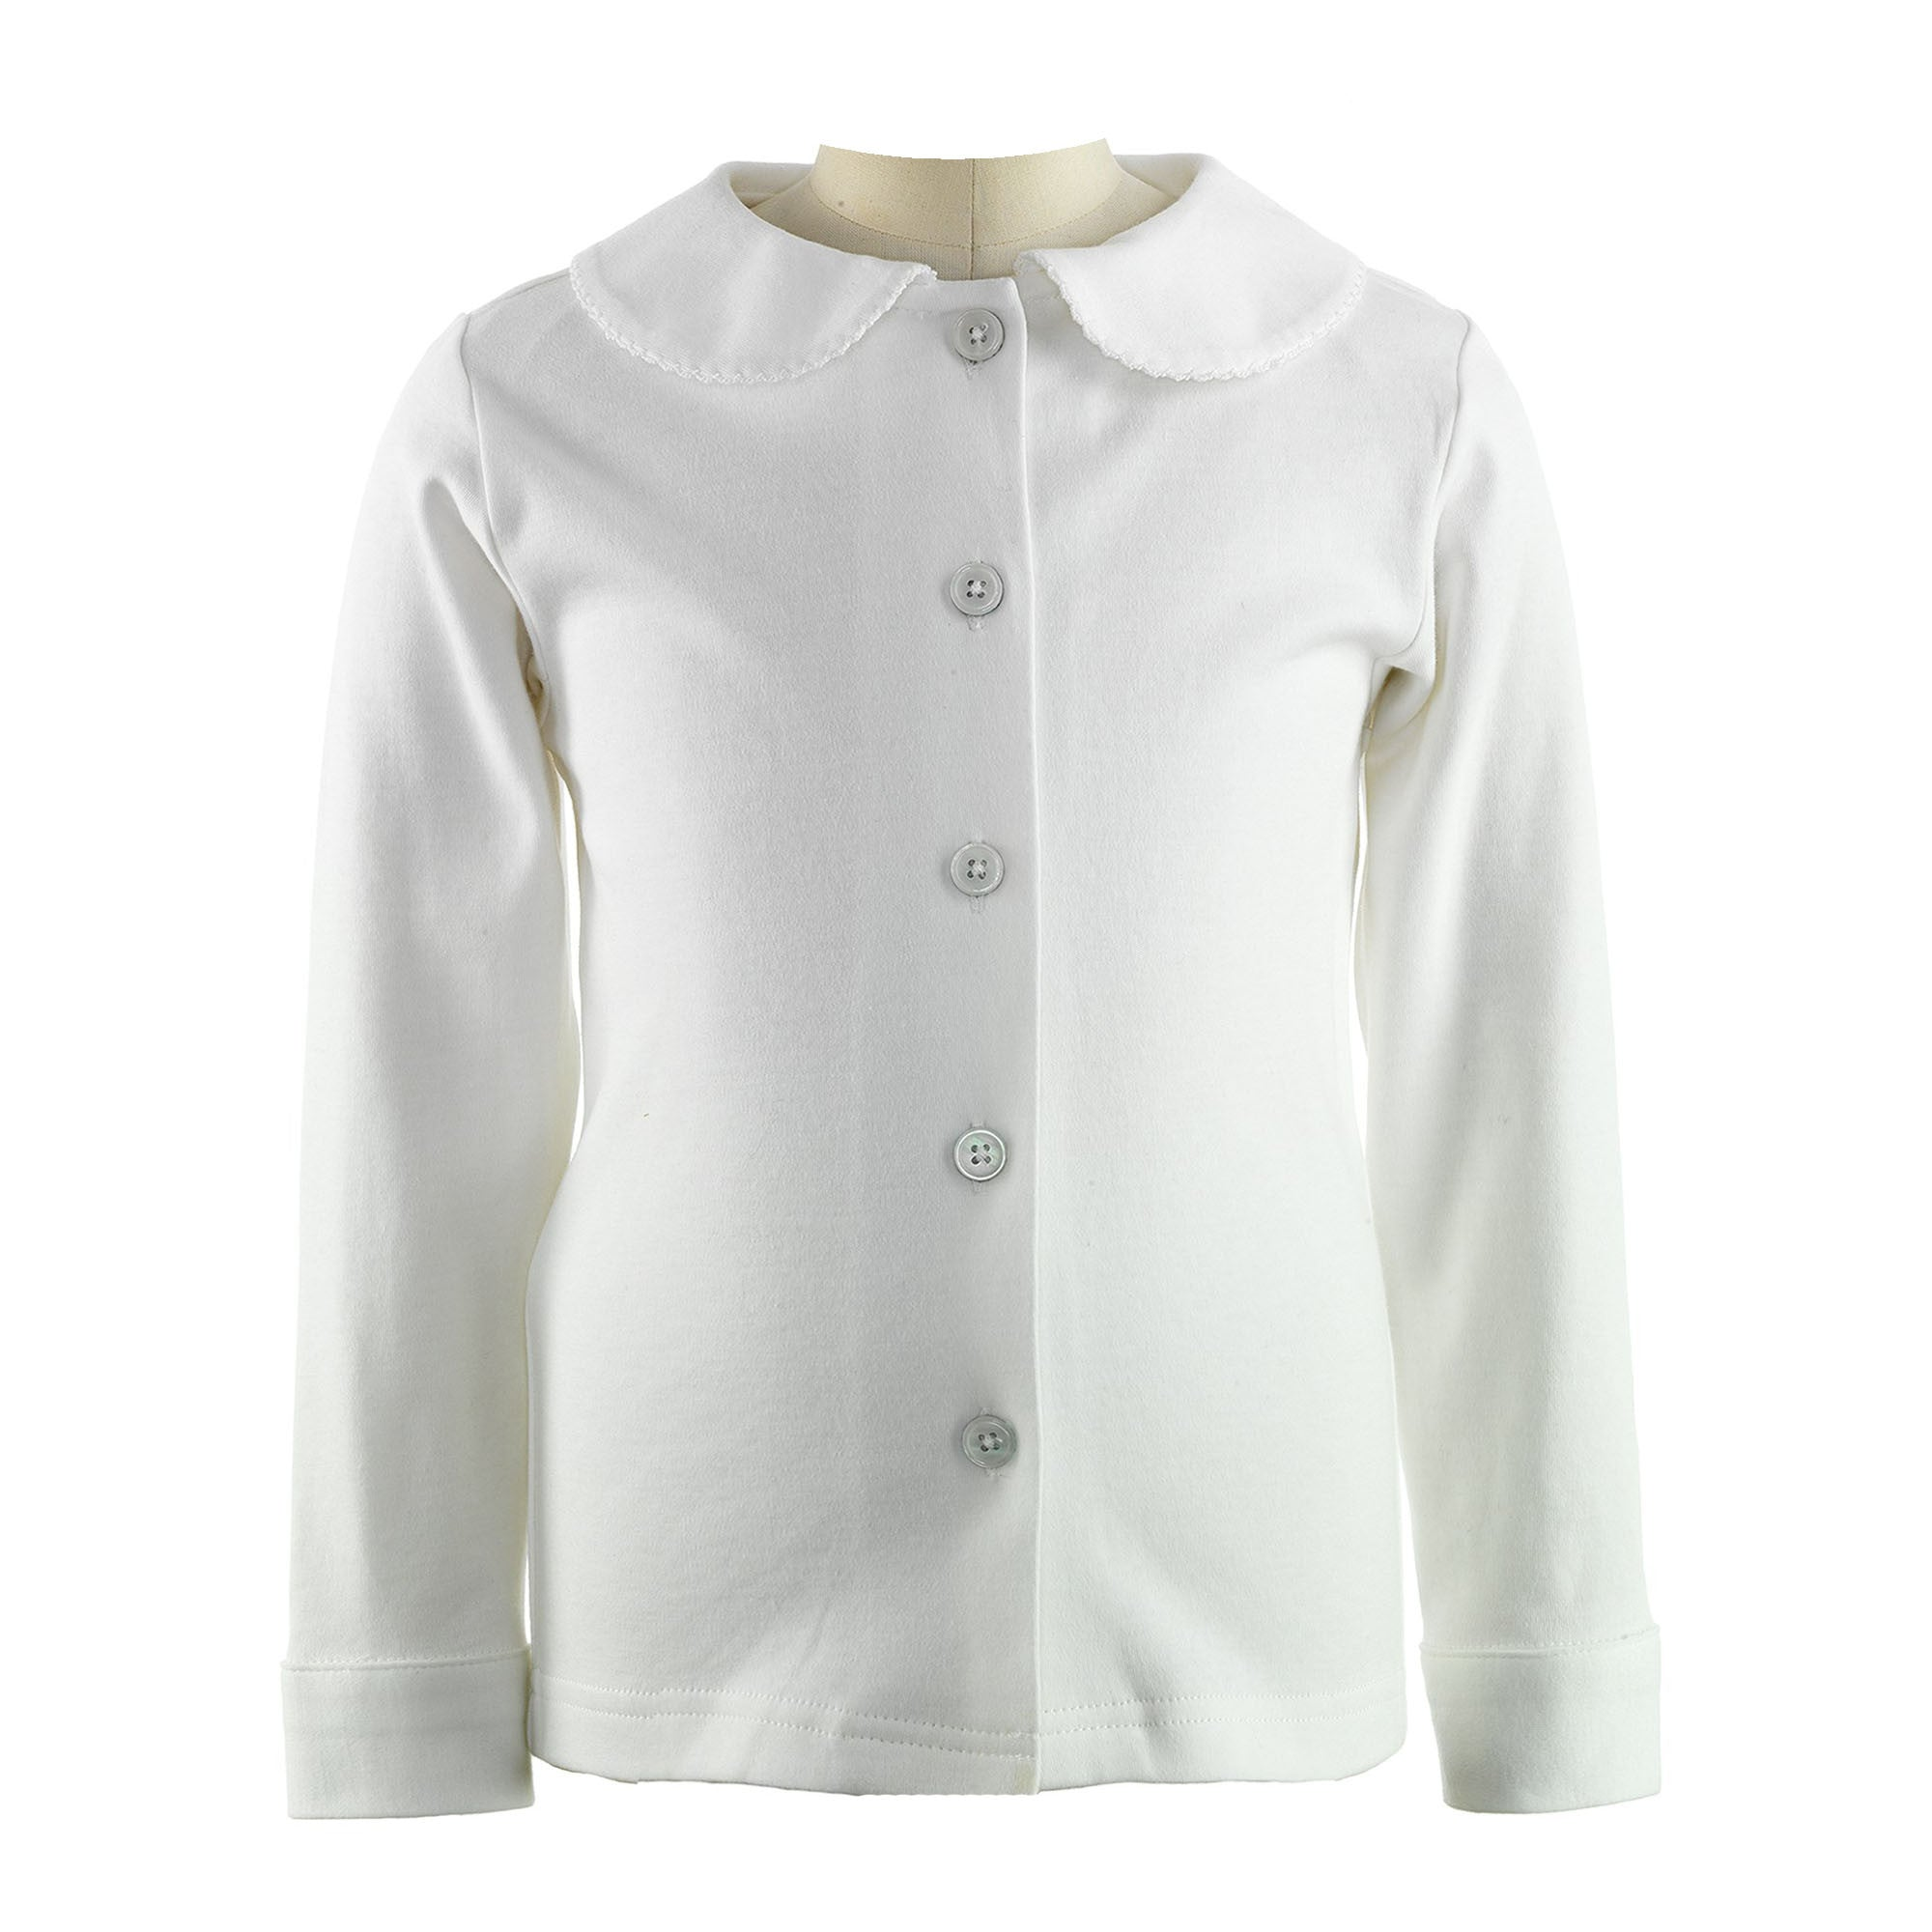 White Jersey Blouse